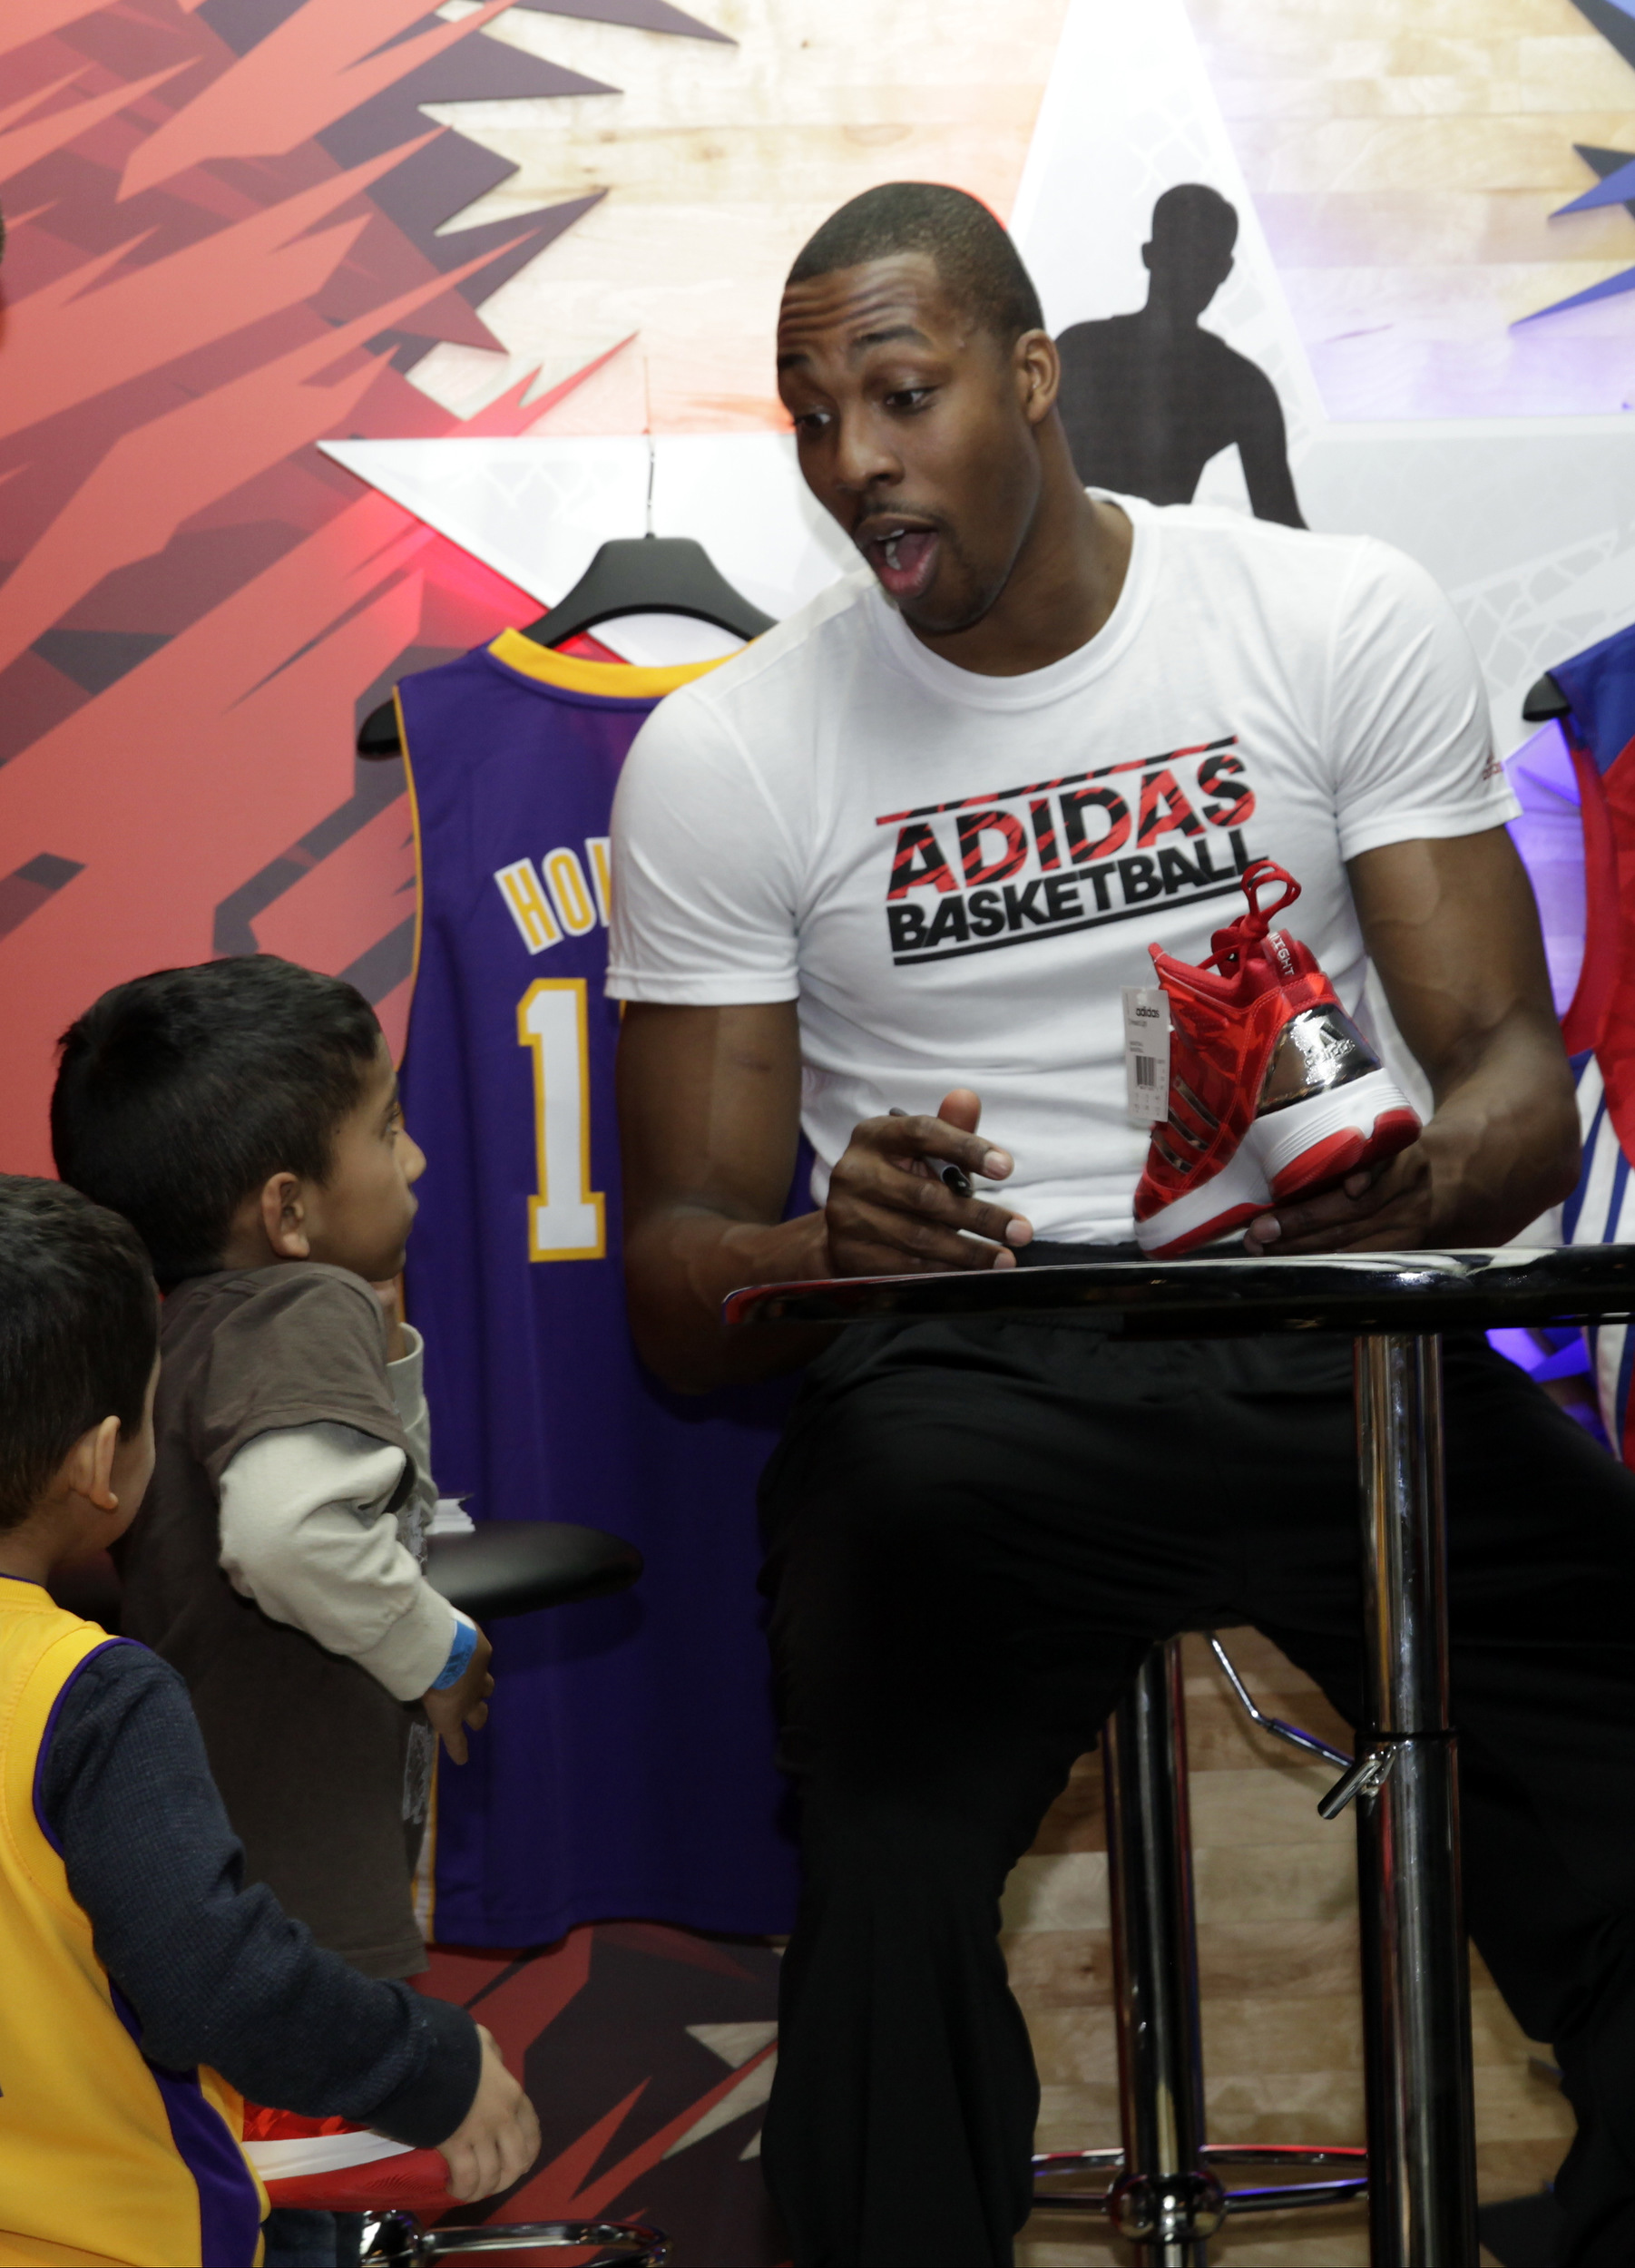 dwight-howard-jrue-holiday-ricky-rubio-and-others-celebrate-nba-all-star-weekend-3